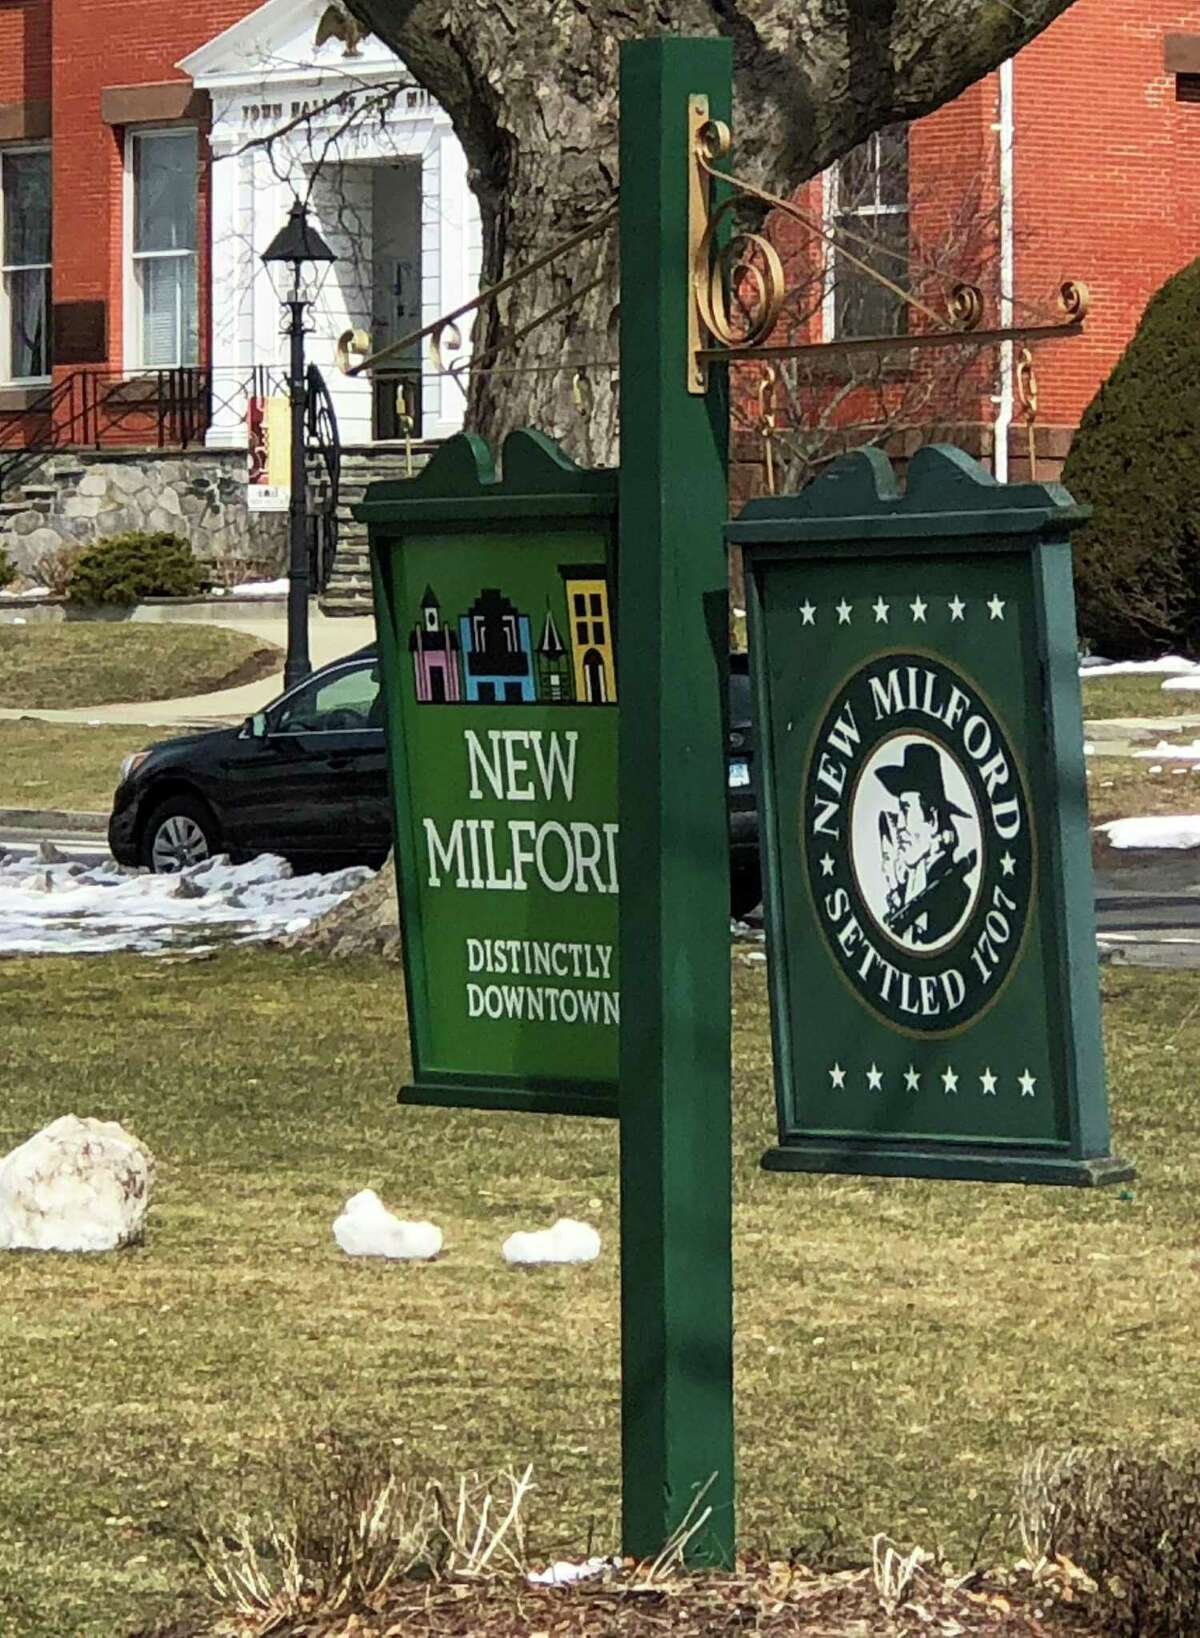 New Milford signs on Village Green, with Roger Sherman Town Hall in background.